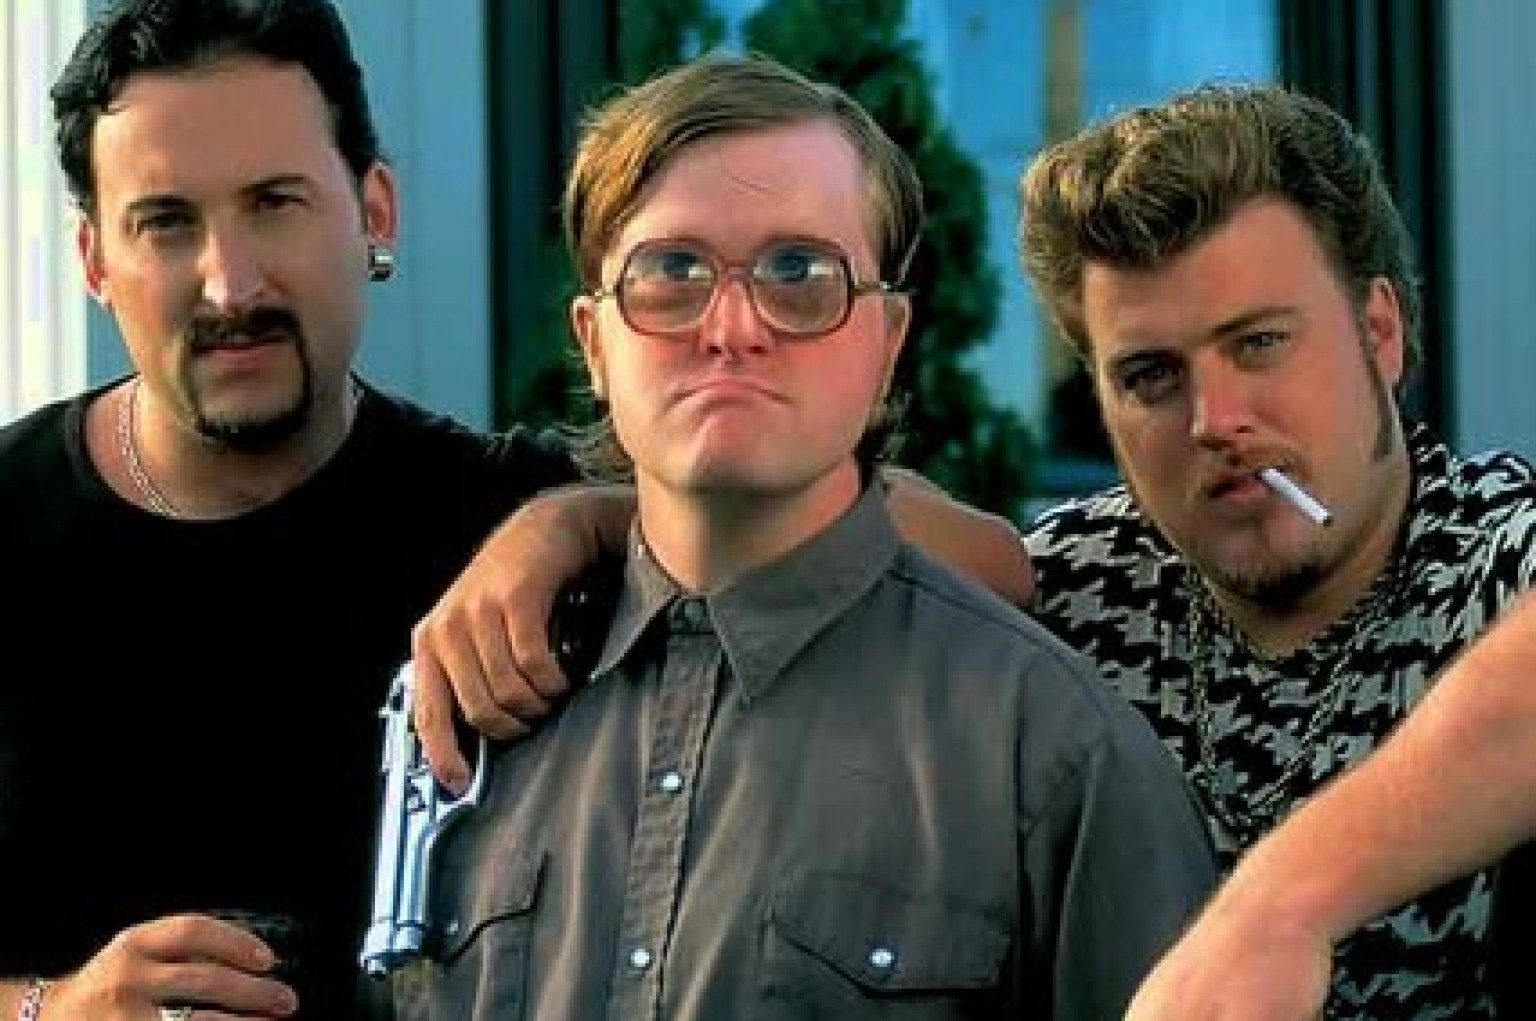 50 Best Tv Comedies On Netflix Trailer Park Boys Joins List Biografia filmografia critica premi articoli e news trailer. on netflix trailer park boys